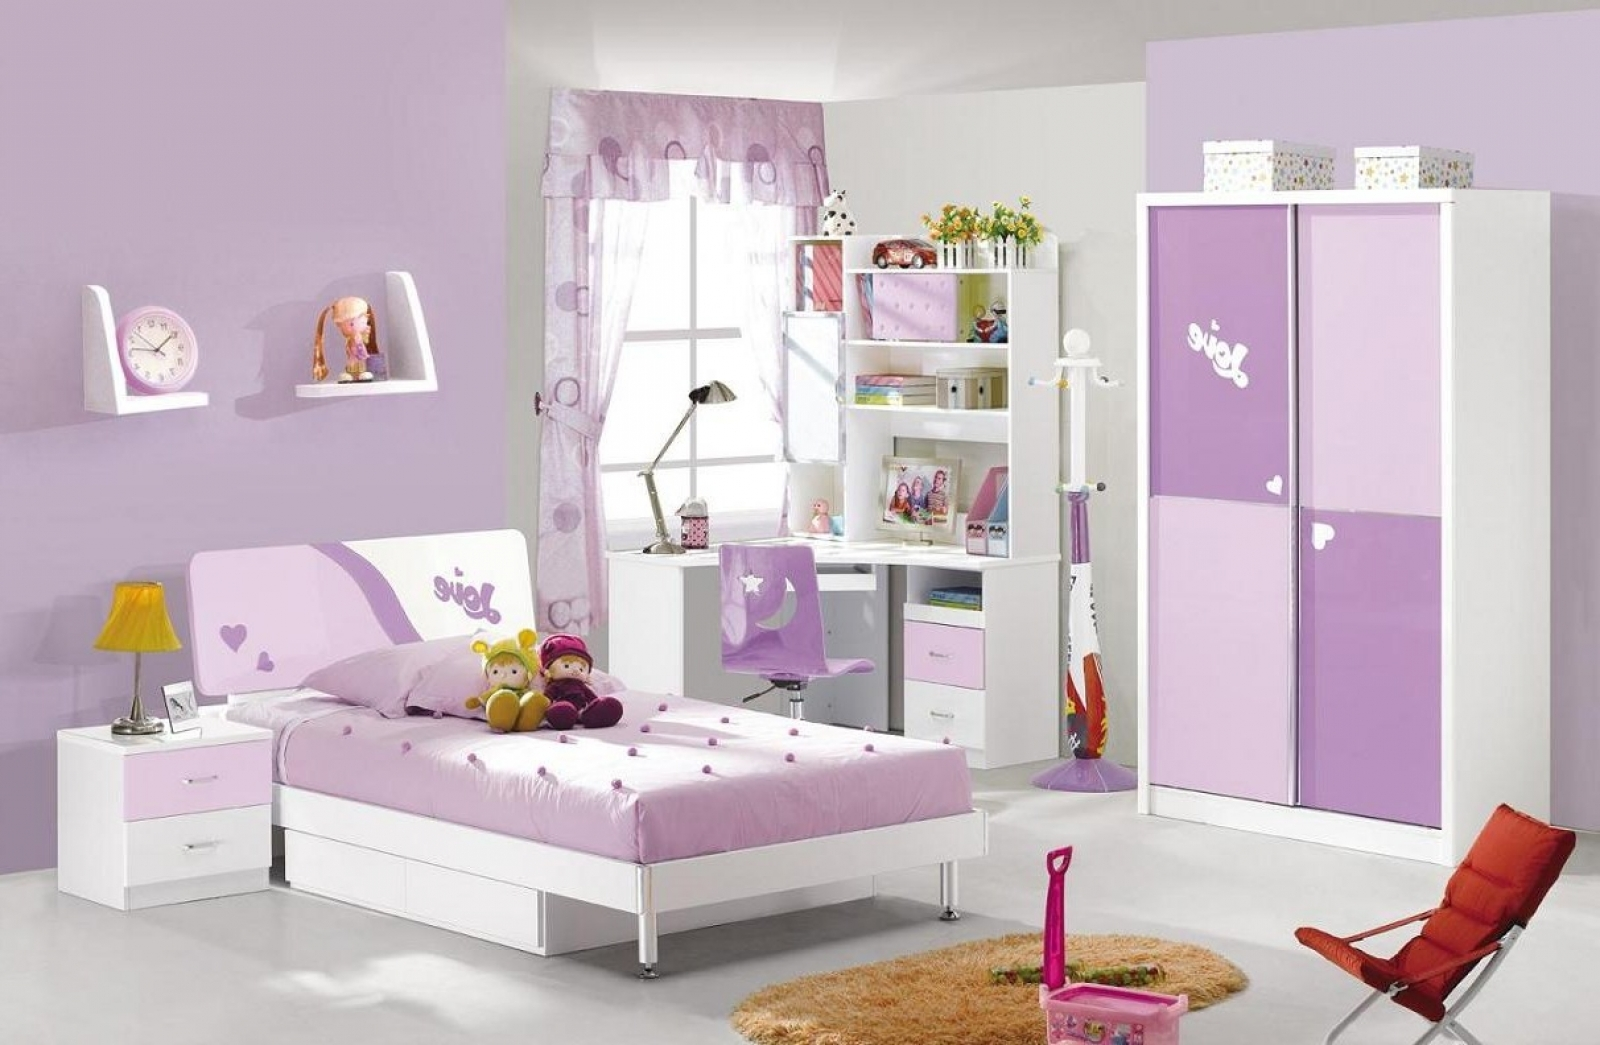 Bedroom Stunning Teenage Furniture Ideas Cool Small Dream Bedrooms For Girls Luxury Girl Modern Designs Sets German Apppie Org